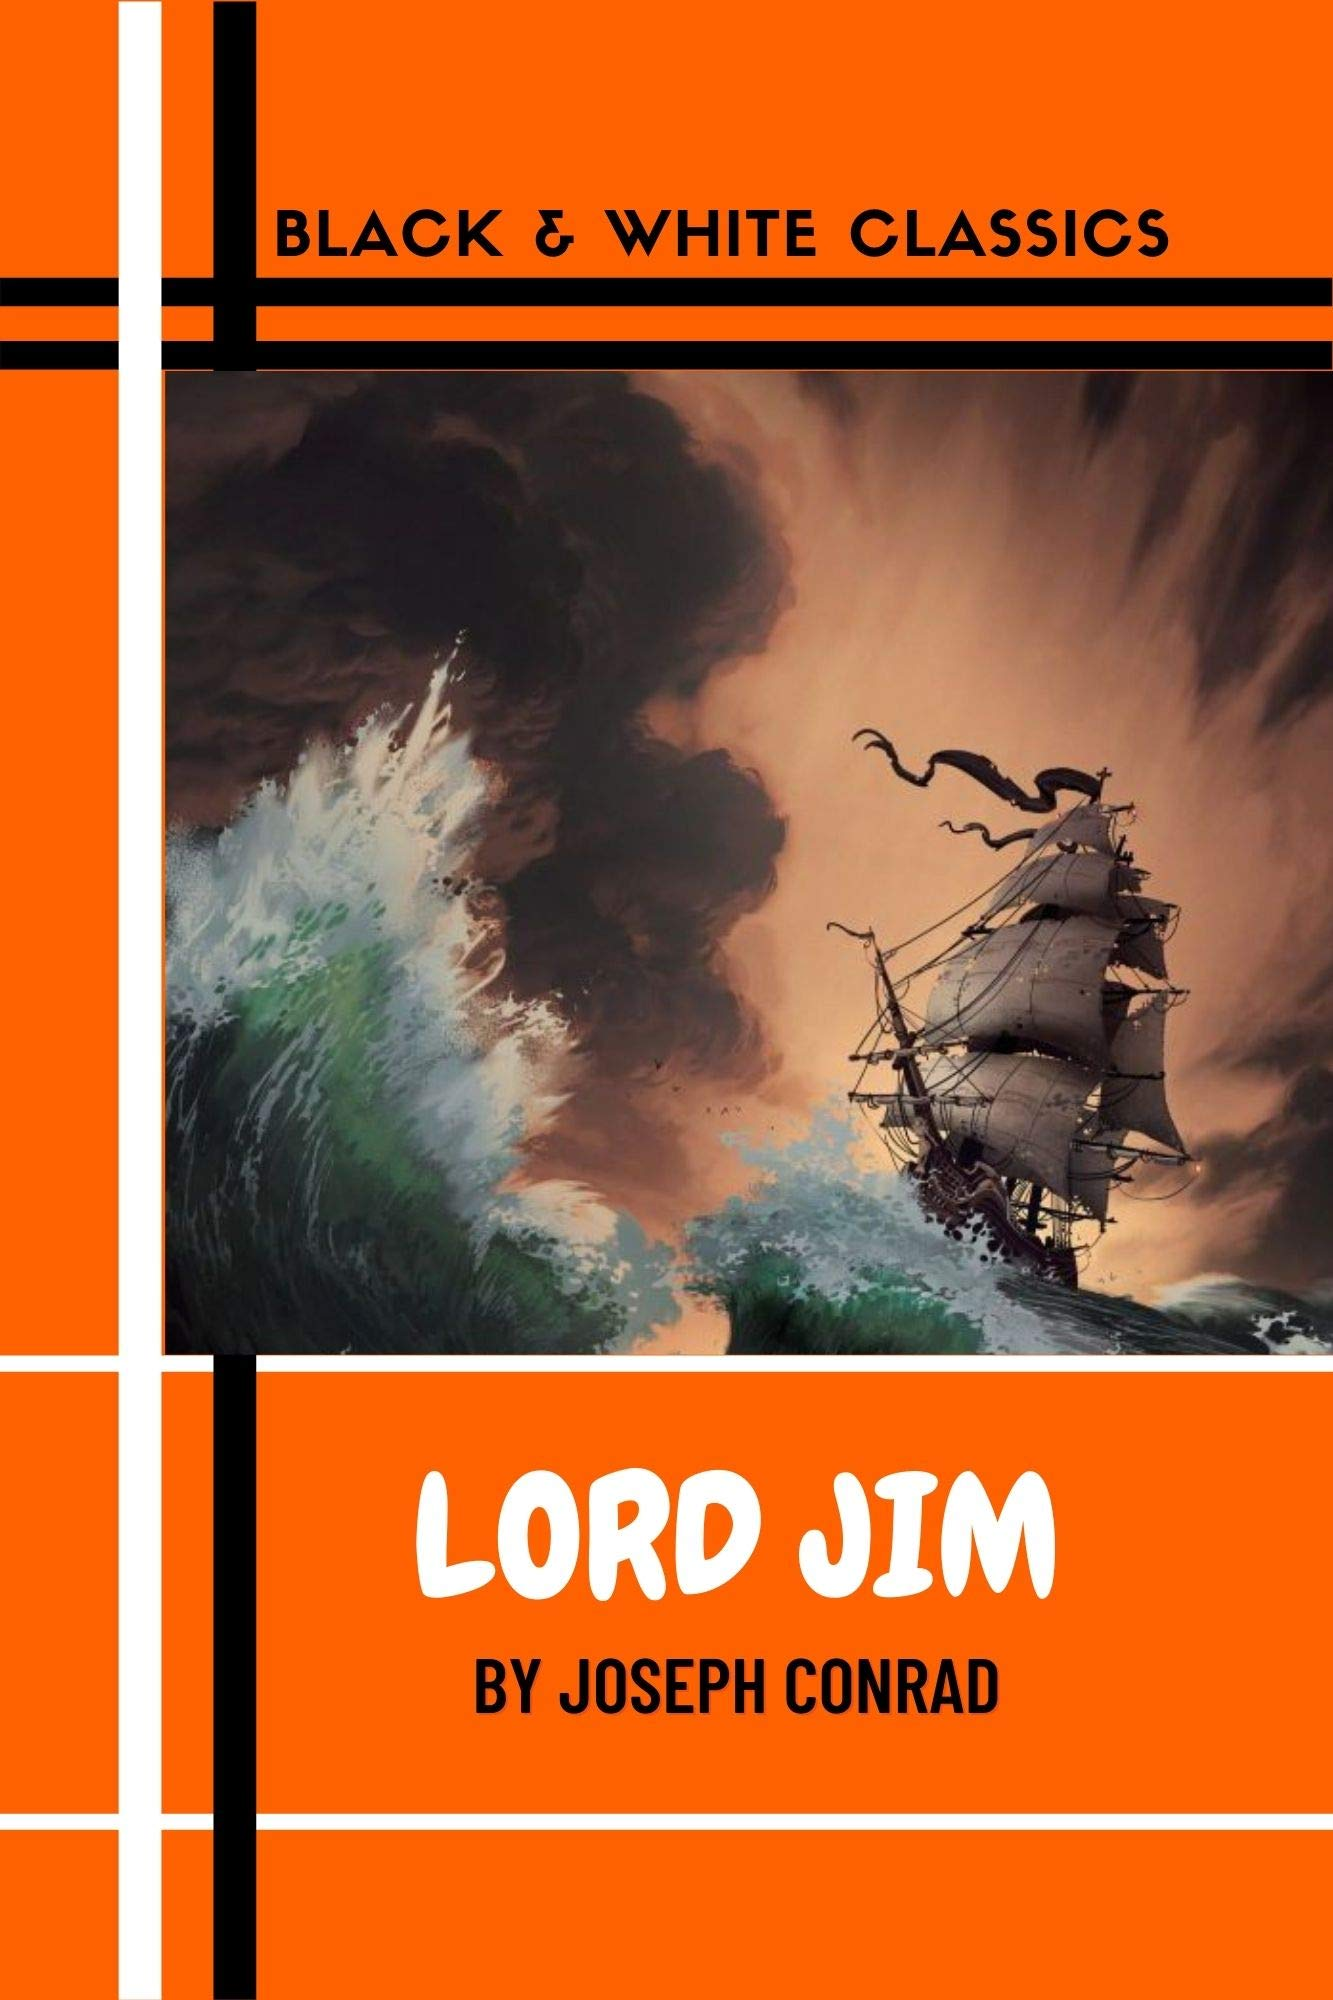 Lord Jim by Joseph Conrad (Black and White Classics Book 26)